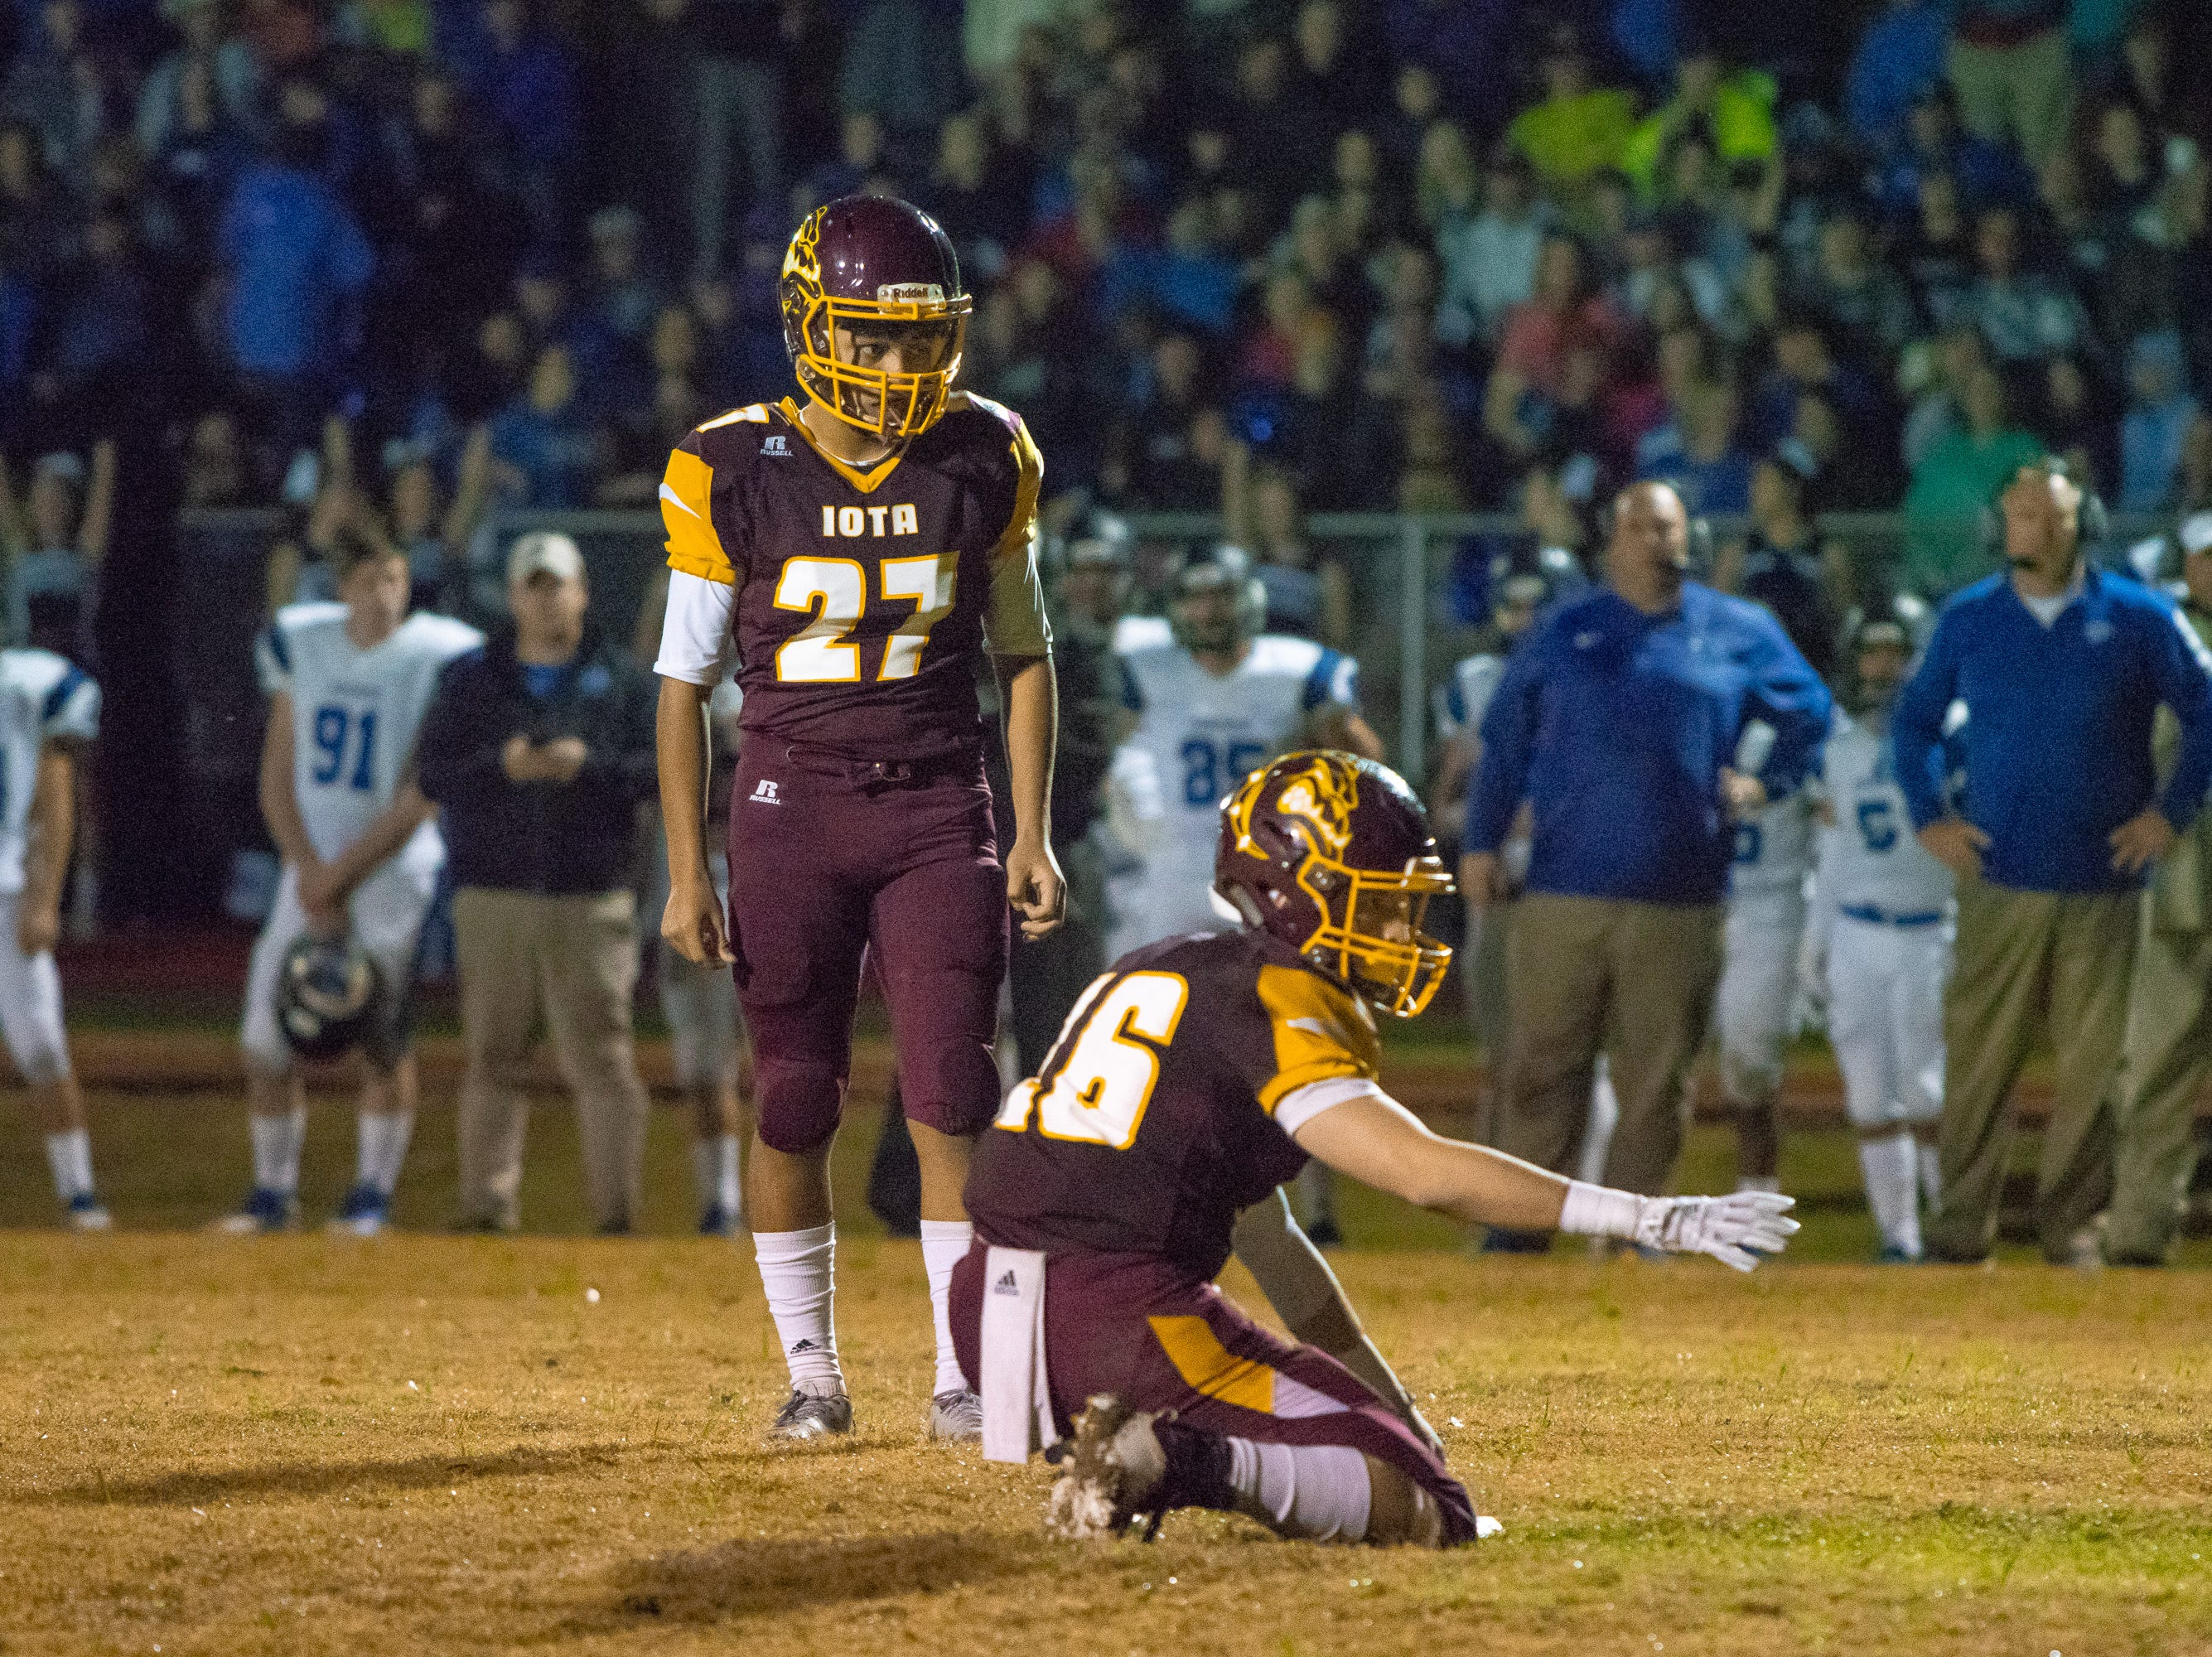 Iota's Luis Doroteo (27) prepares to kick a field goal as the Iota Bulldogs take on the Sterlington Panthers in an LHSAA playoff football game on Friday, Nov. 30, 2018.